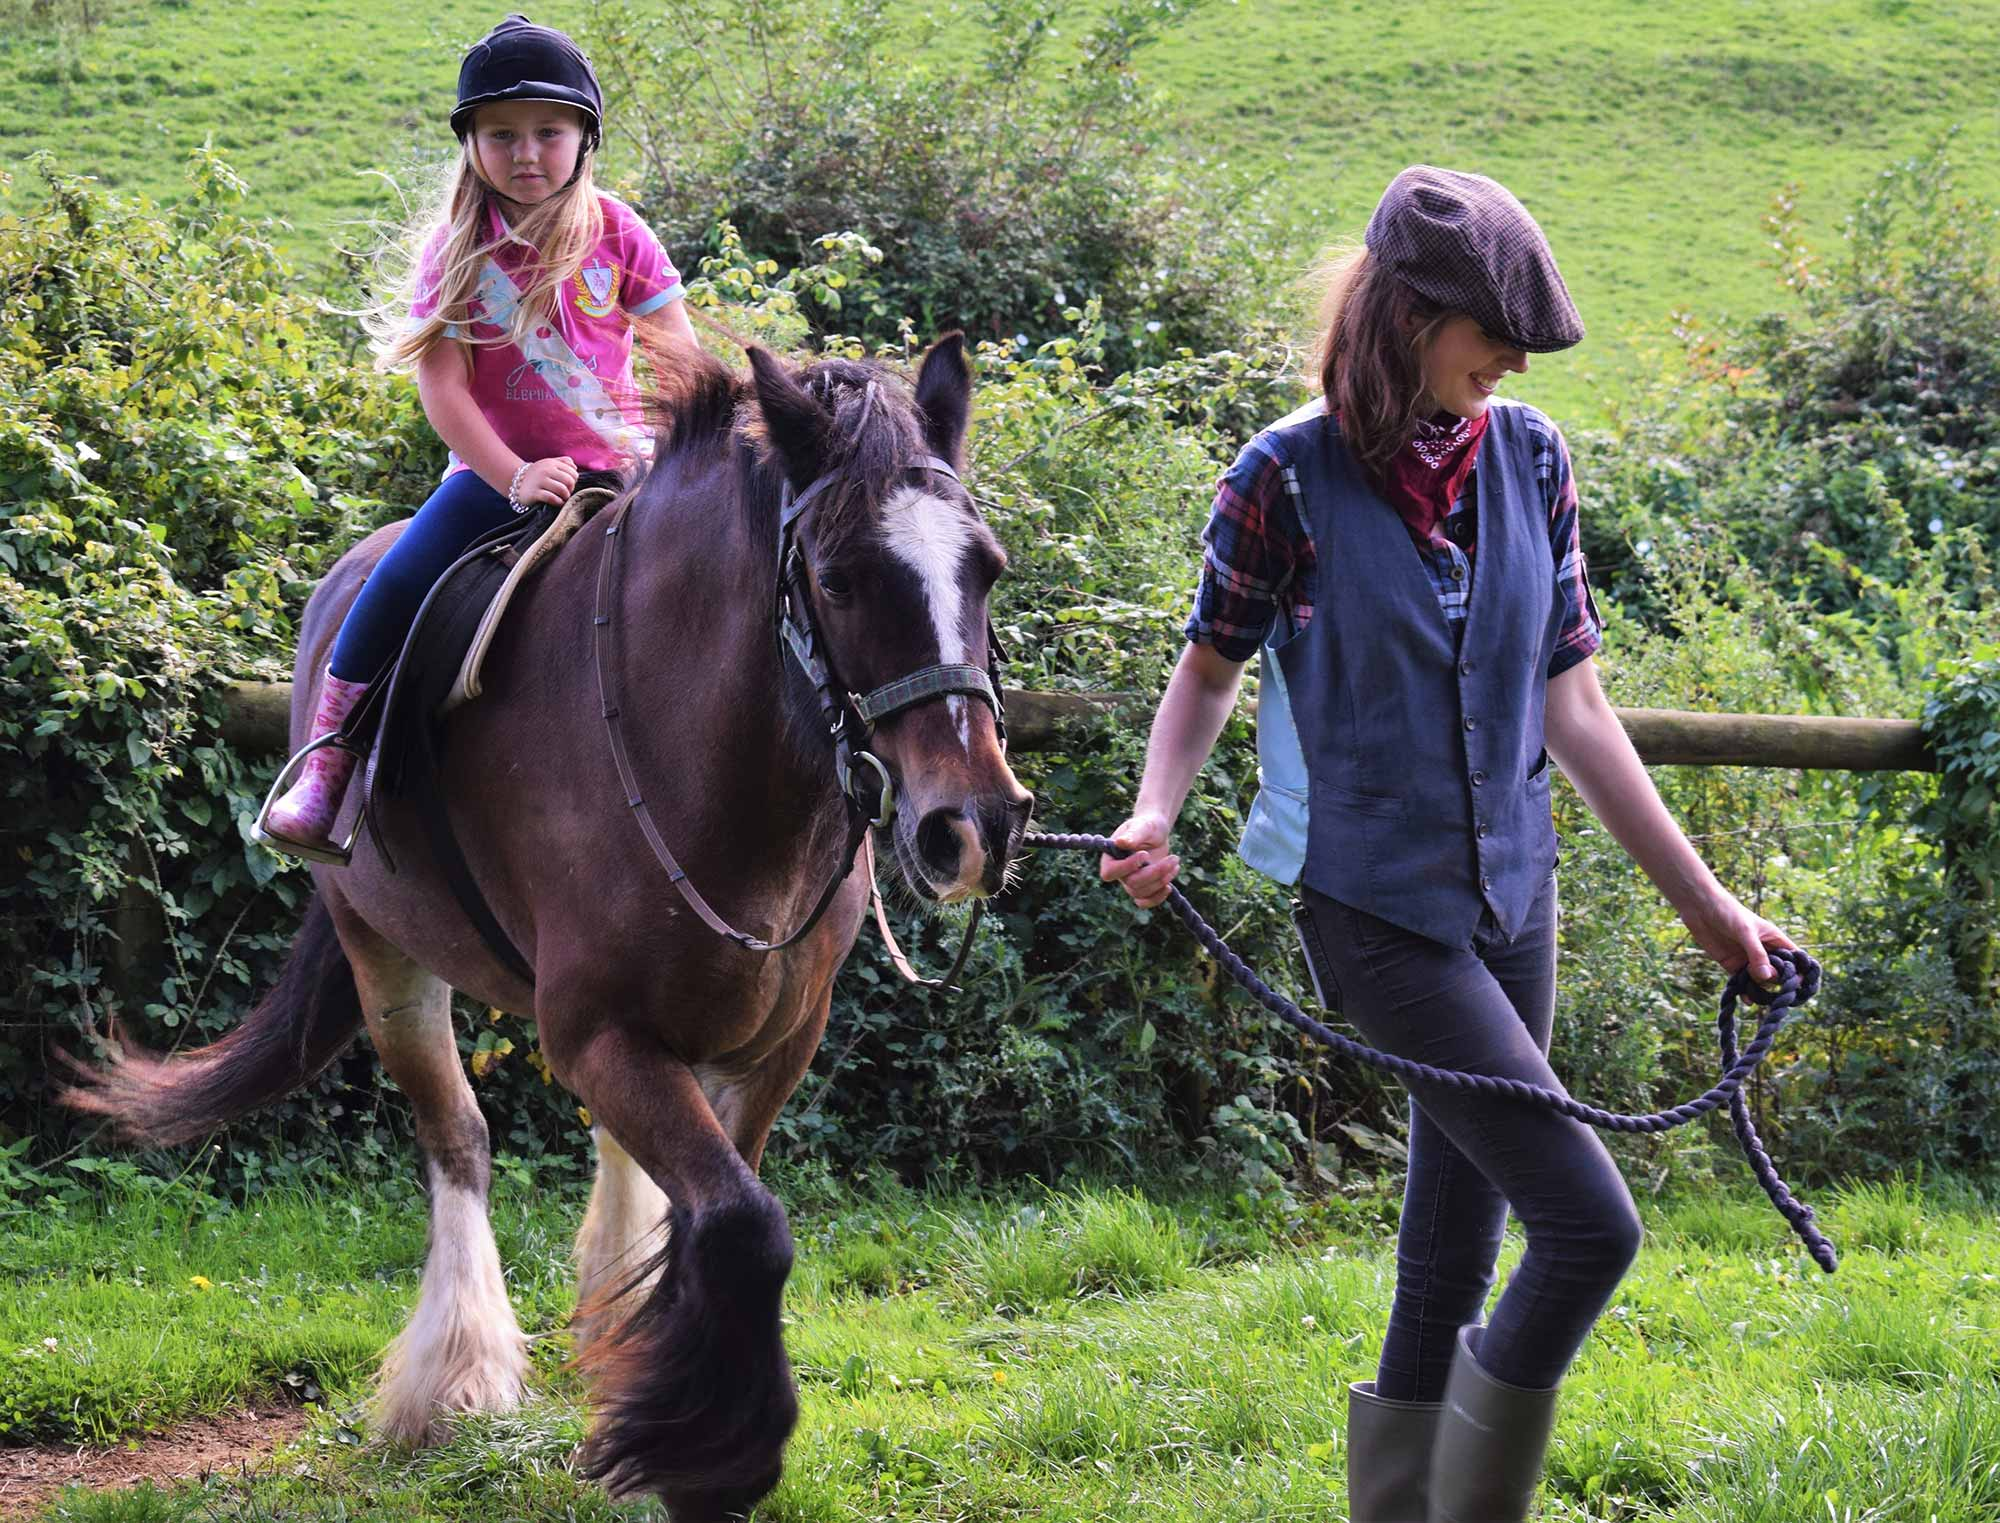 Kids horse riding at Dorset Heavy Horse Farm Park